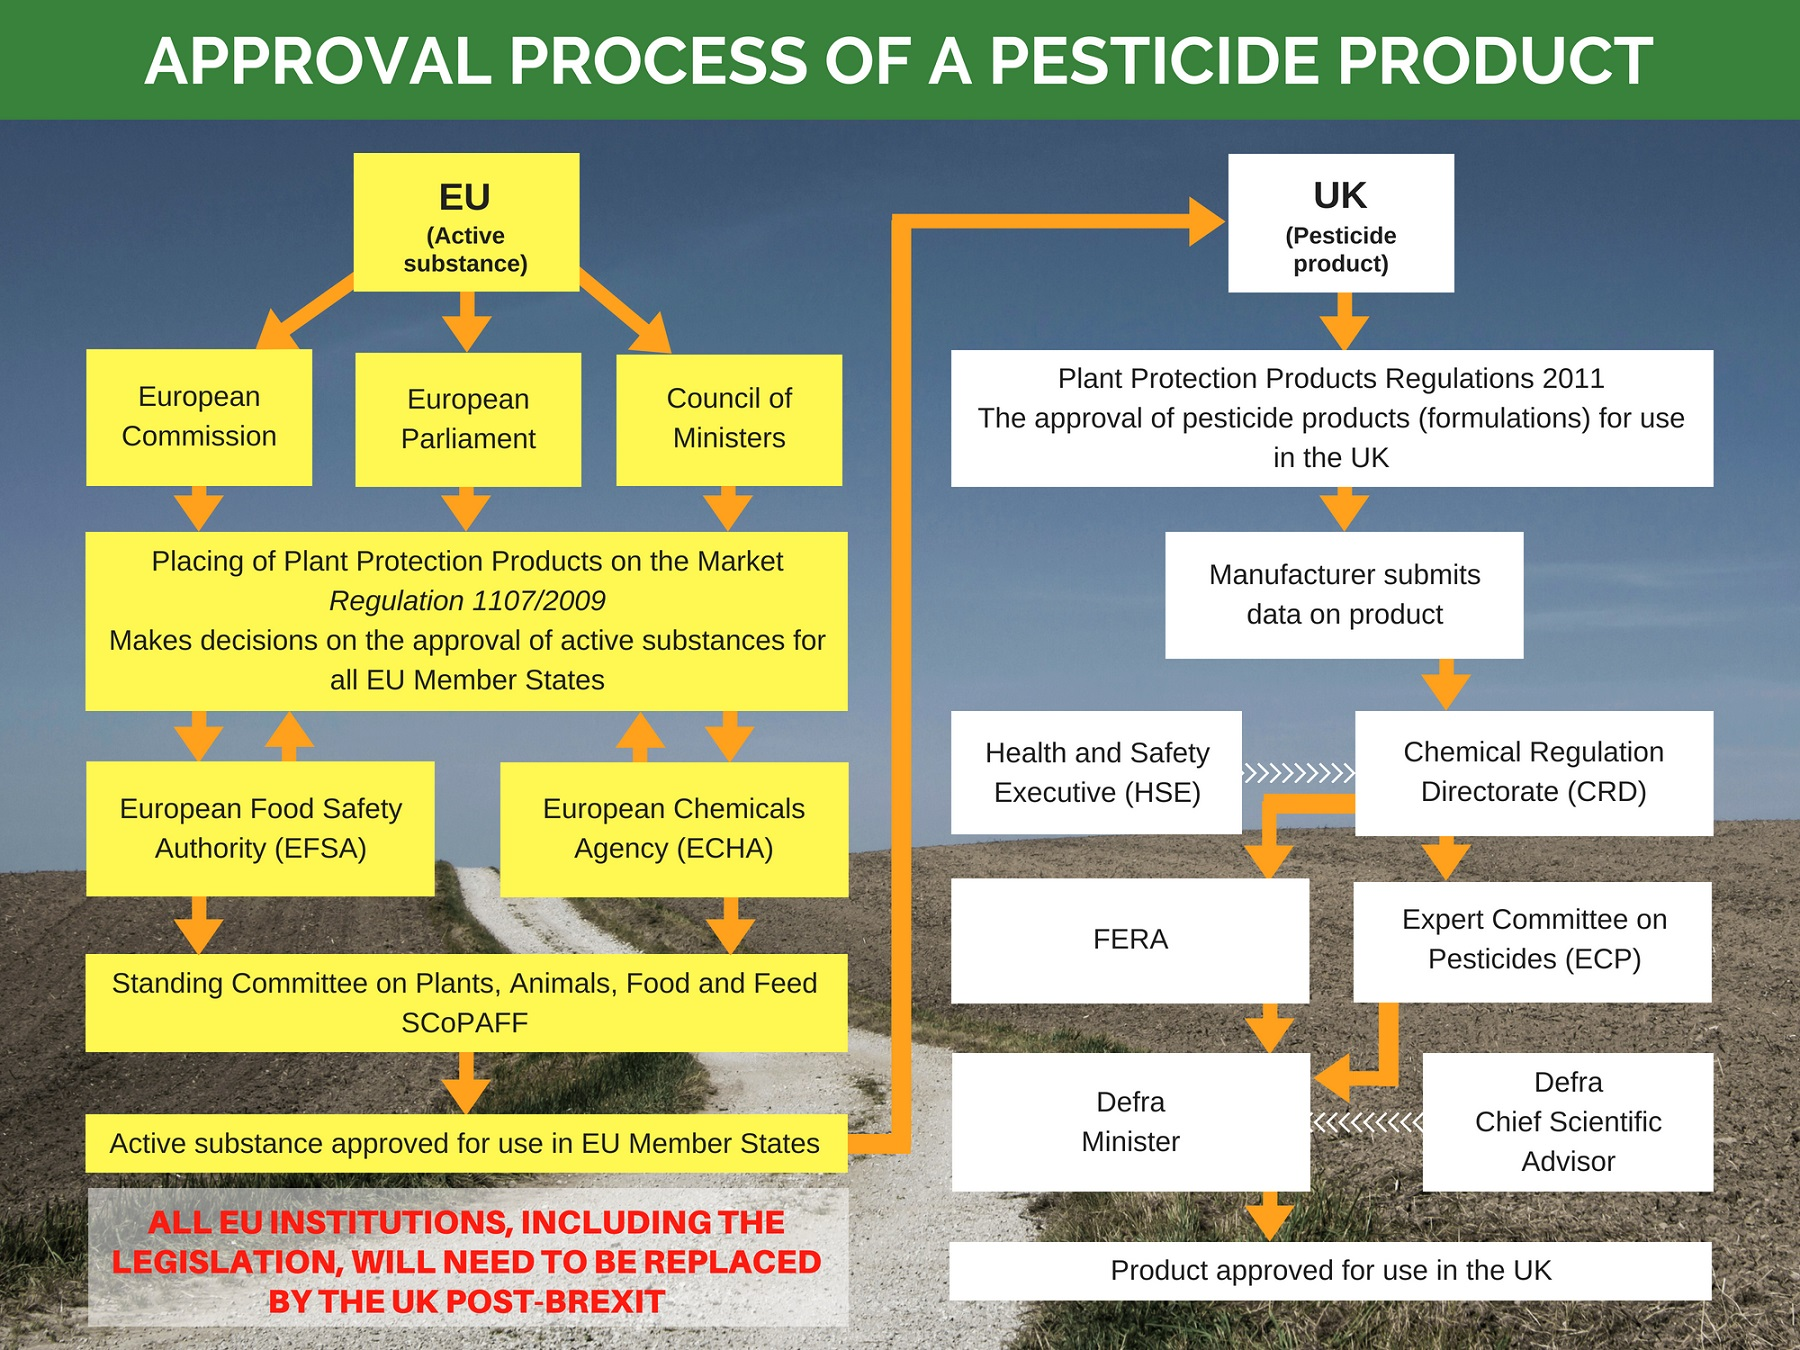 Approval process of a pesticide product - pathway